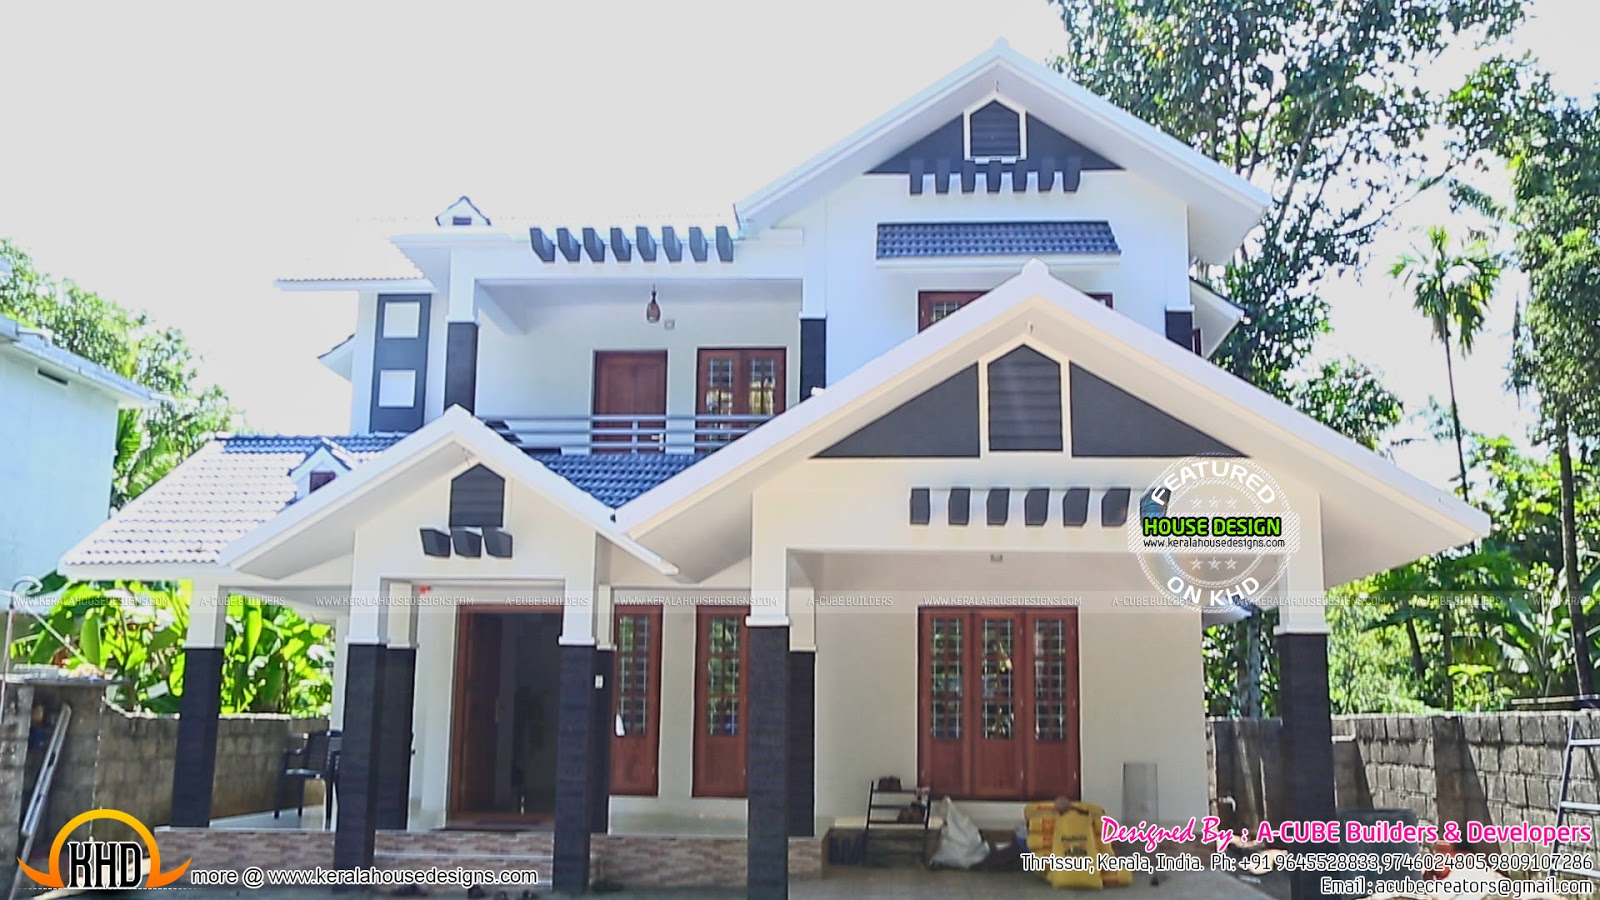 New house plans for 2016 starts here kerala home design and floor plans New house design